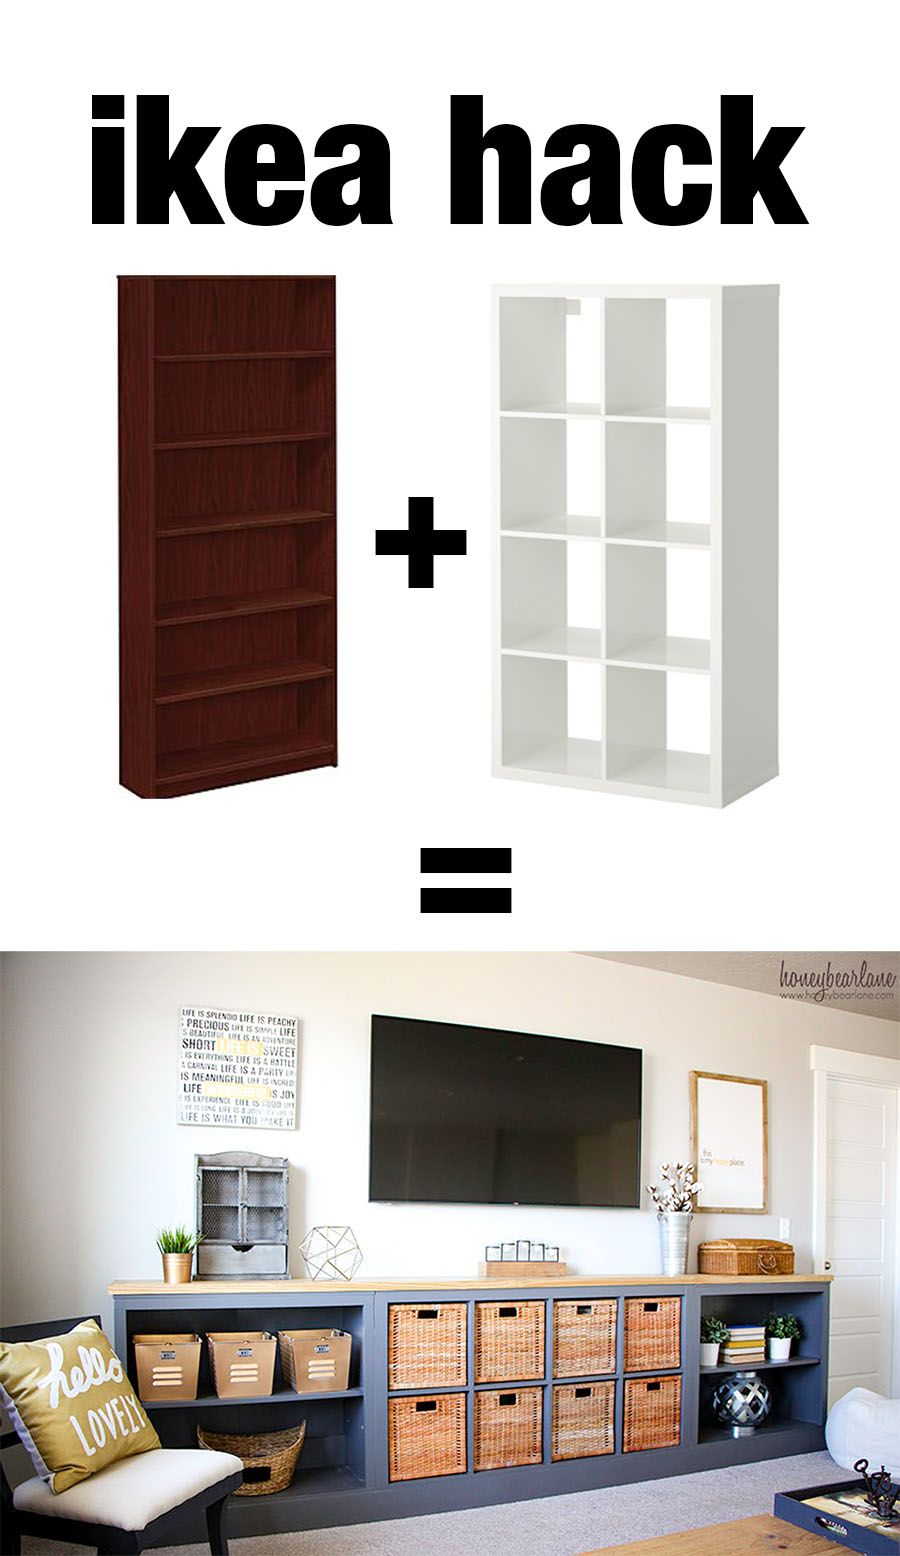 Ikea hack expedit into long storage unit ikea hack Ikea media room ideas